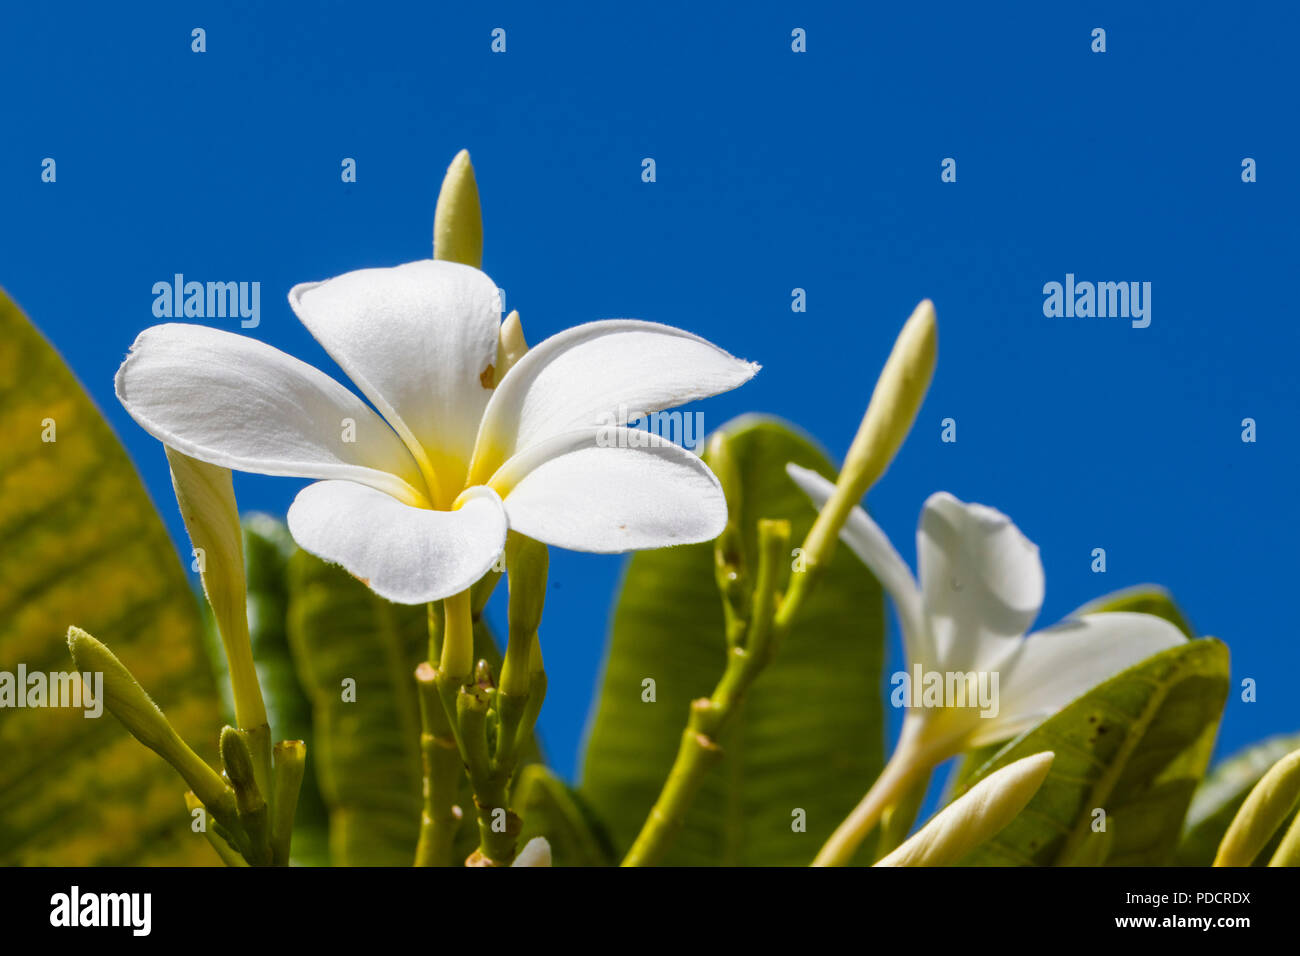 White with yellow center plumeria blossoms are also known as lei white with yellow center plumeria blossoms are also known as lei flowers and frangipani and used to make traditional hawaiian leis aganist a blue sky izmirmasajfo